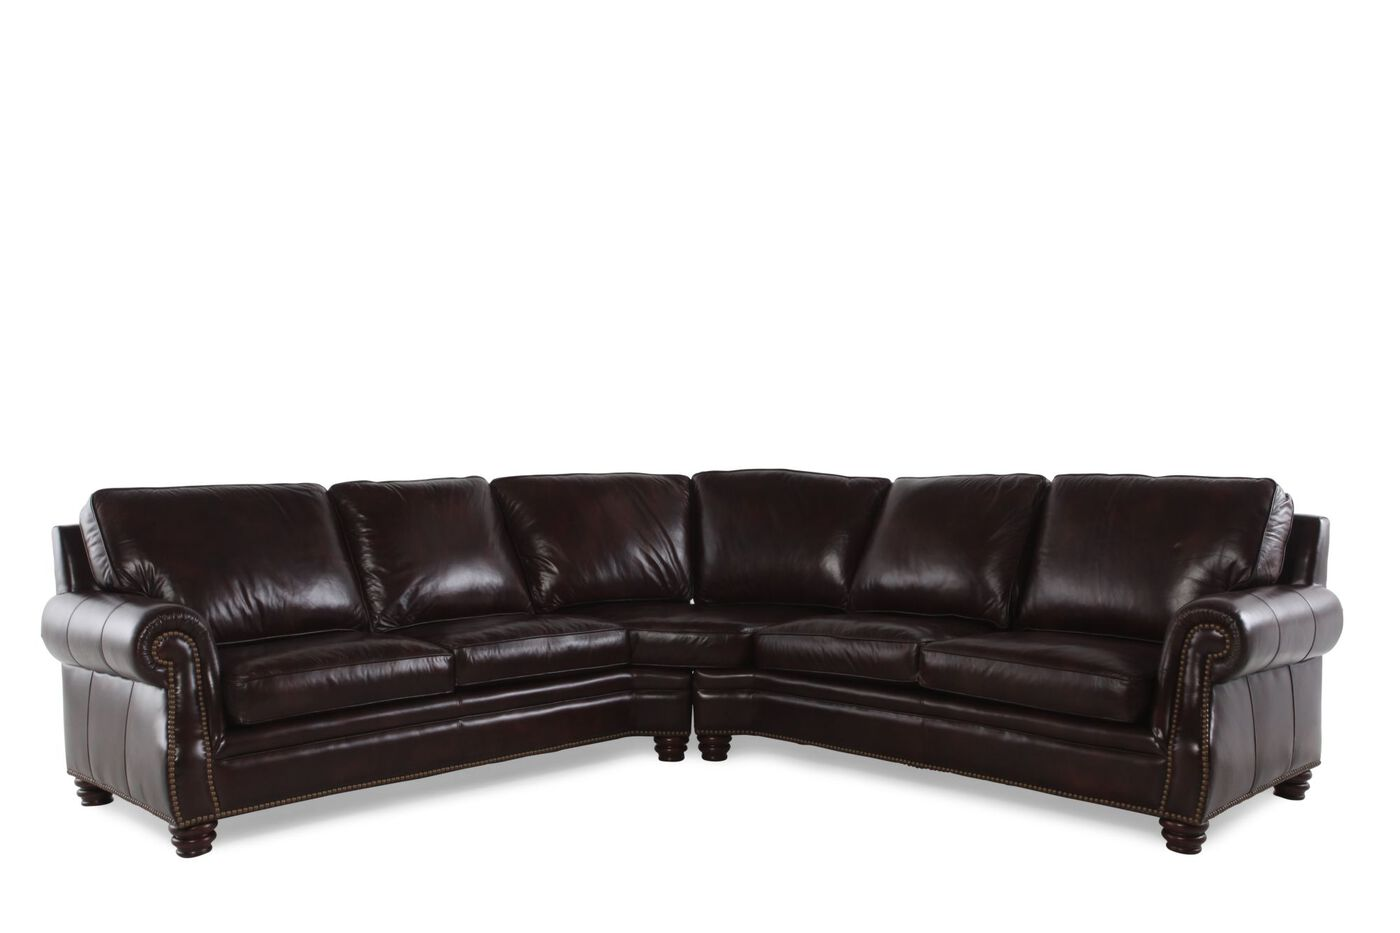 Henredon two piece leather sectional mathis brothers for Sectional sofas mathis brothers